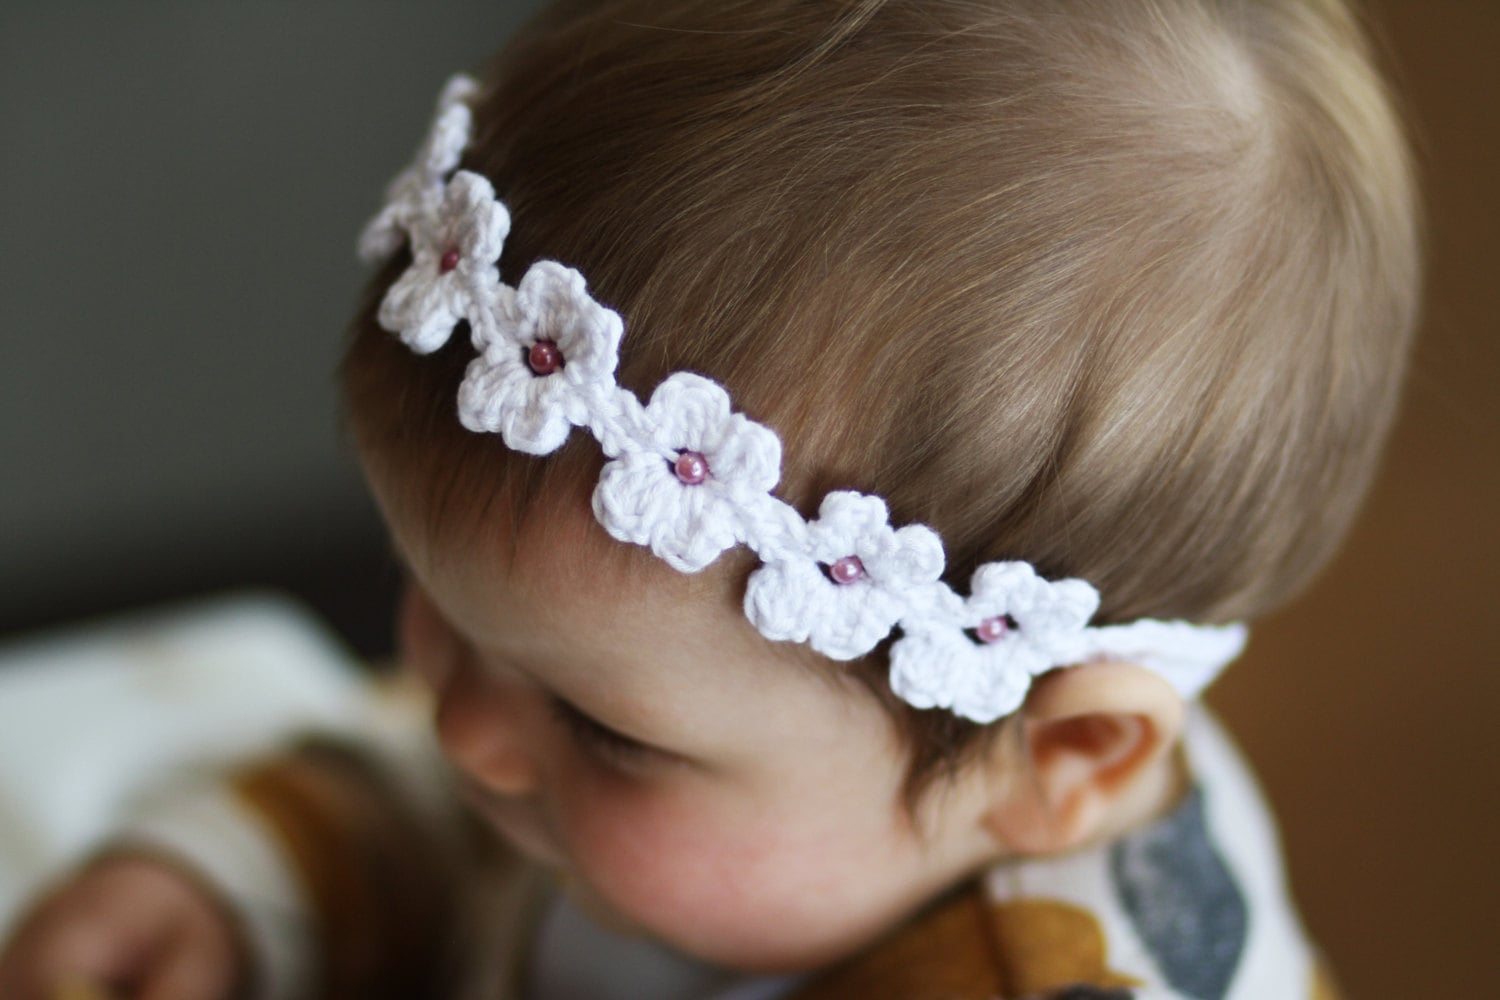 Daisy chain headband crochet pattern from daisychainpatterns on etsy daisy chain headband crochet pattern mightylinksfo